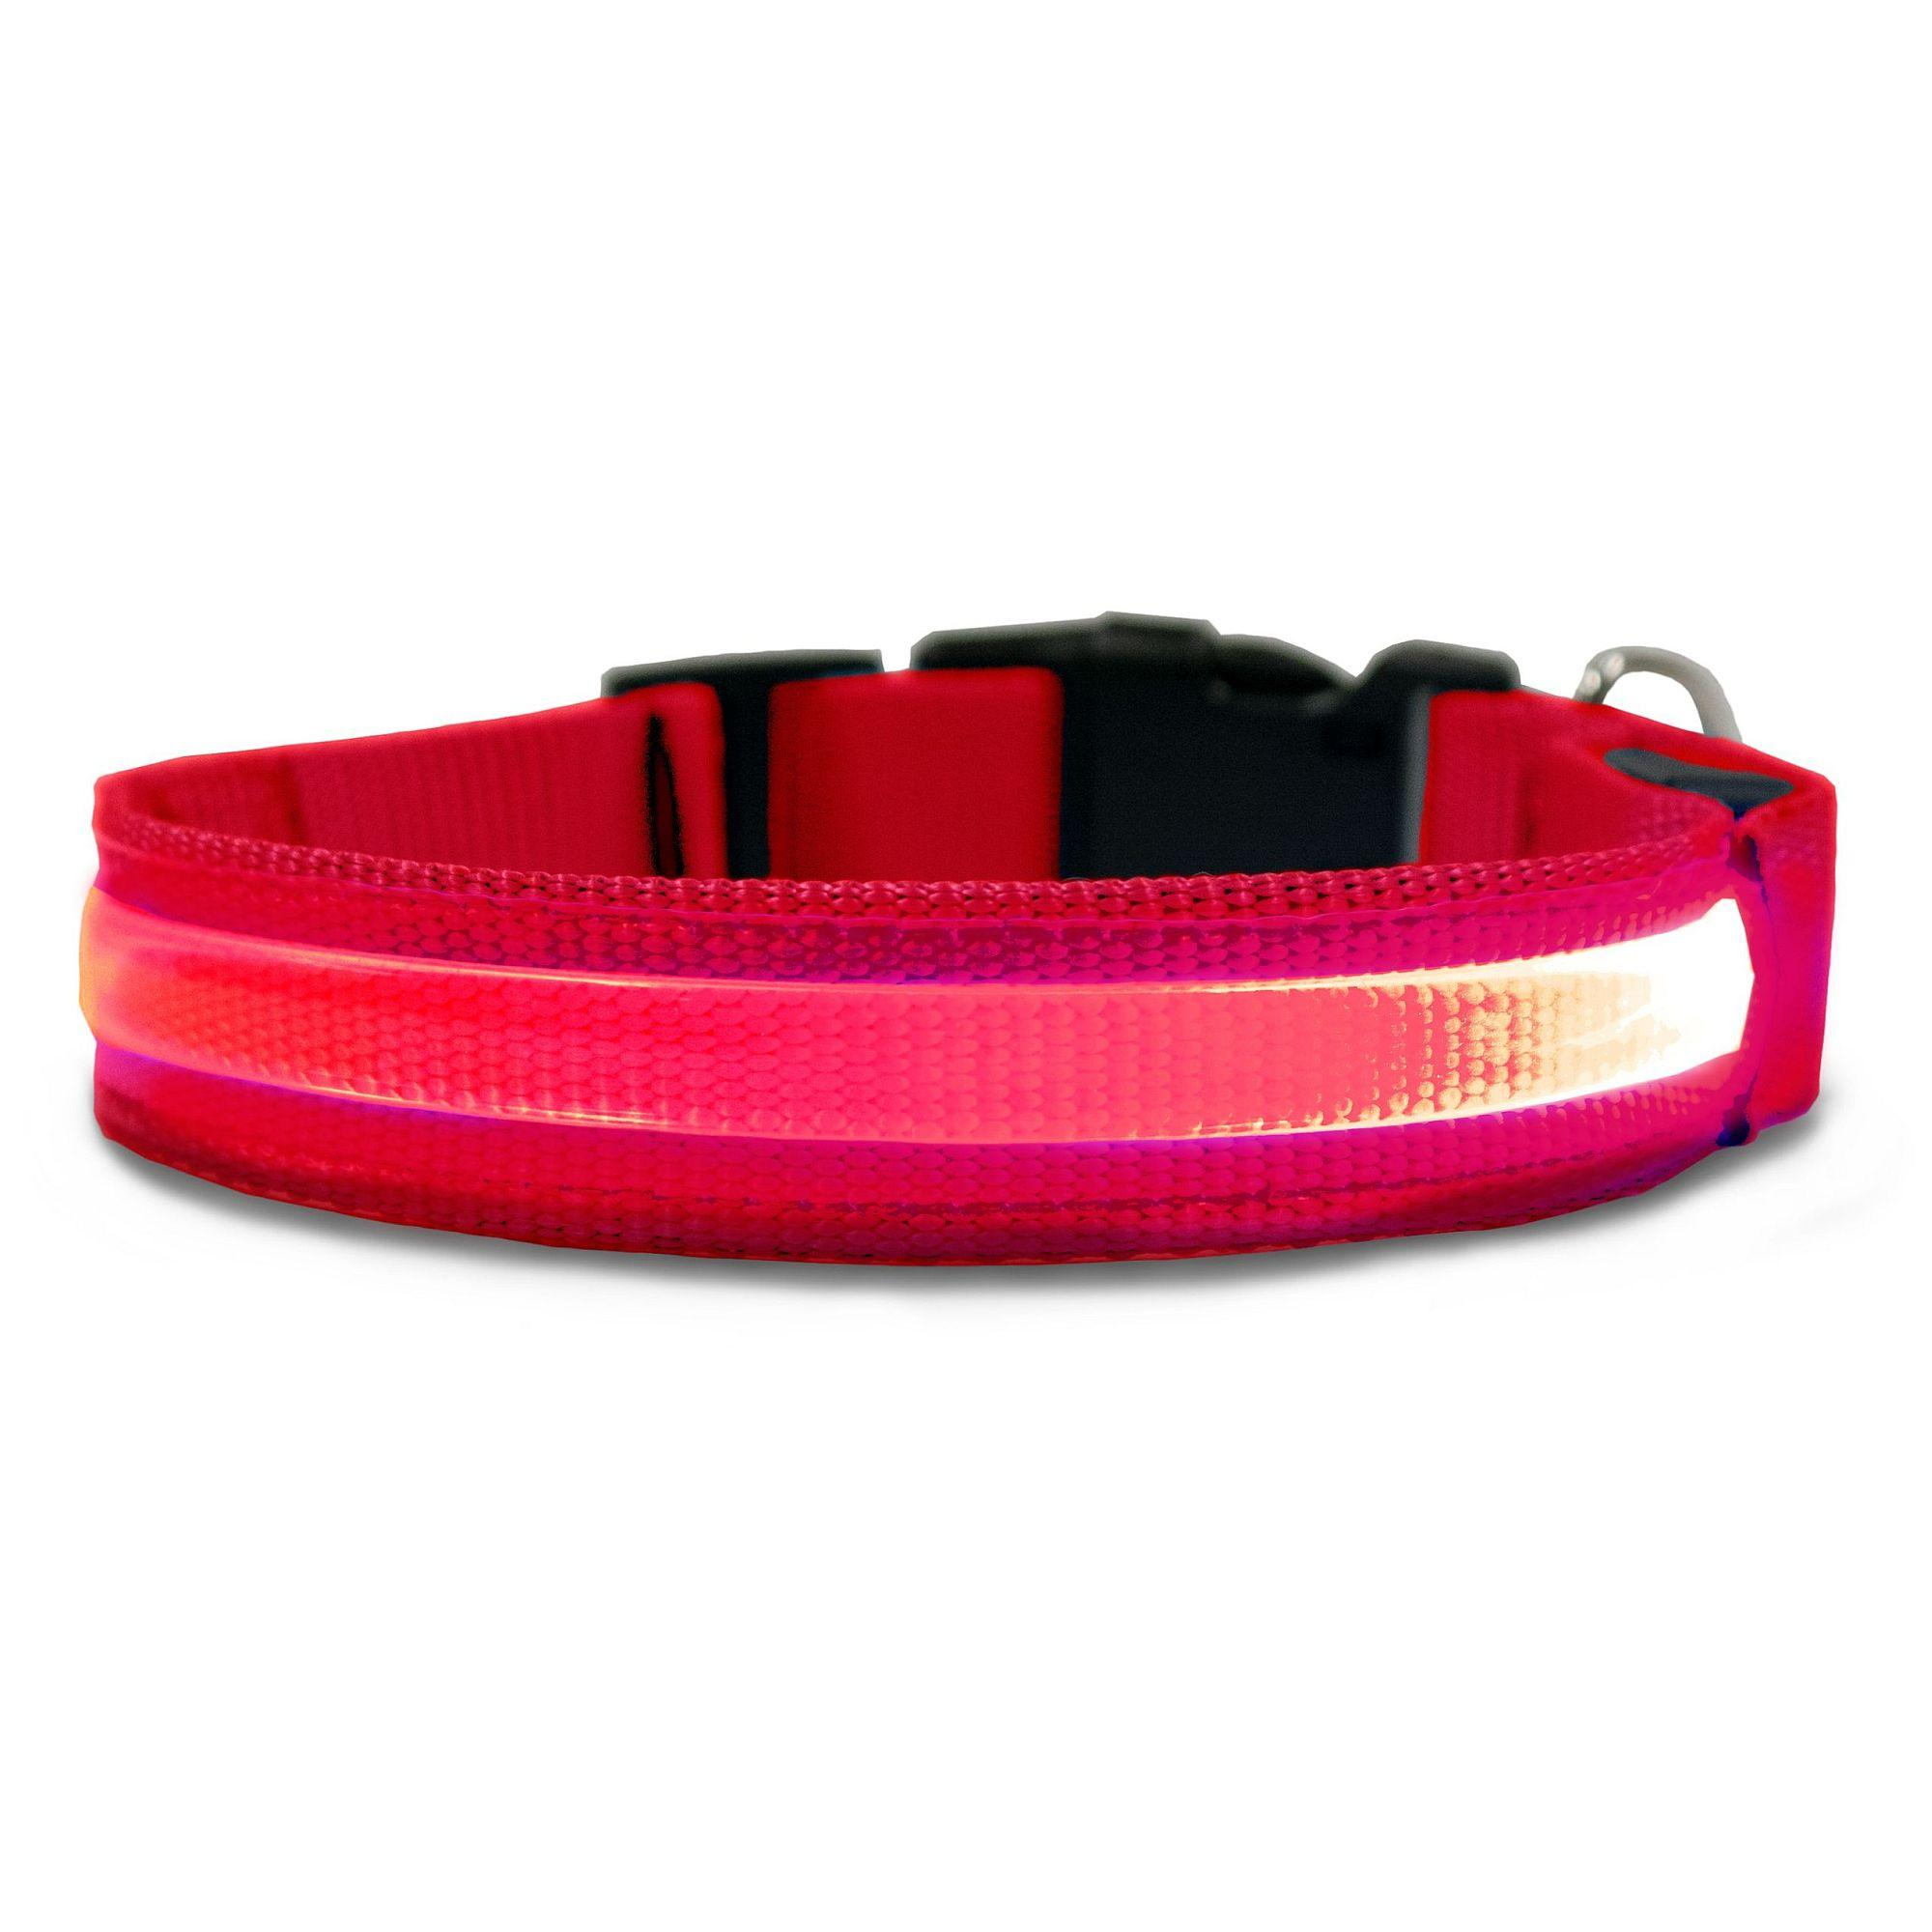 FurHaven LED Safety Pet Collar - Red